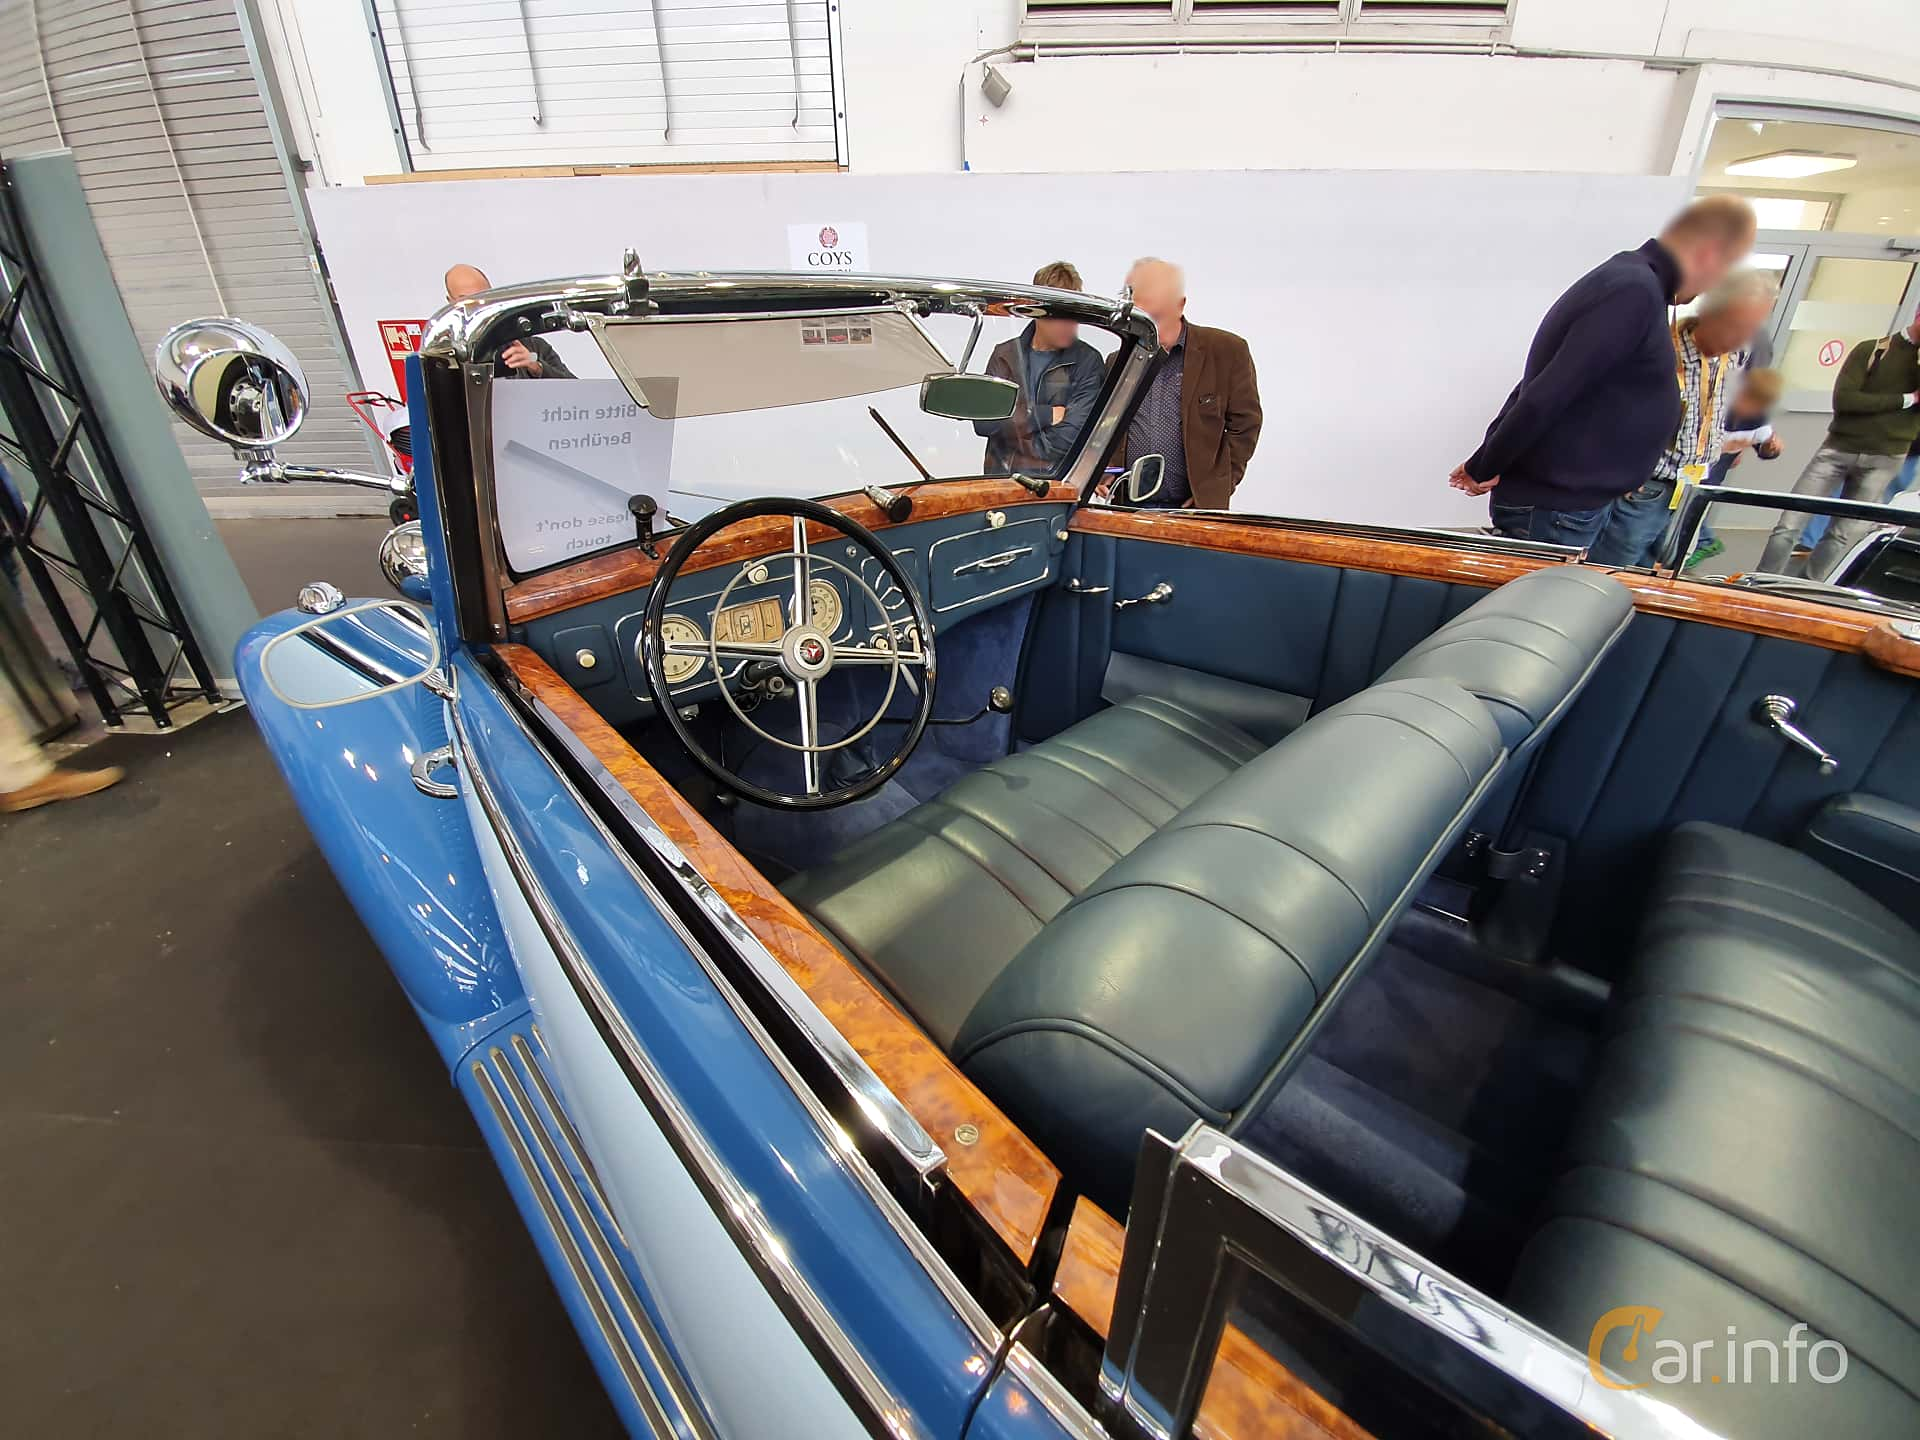 Mercedes-Benz 170 S Cabriolet A  Manuell, 52hk, 1950 at Techno Classica Essen 2019